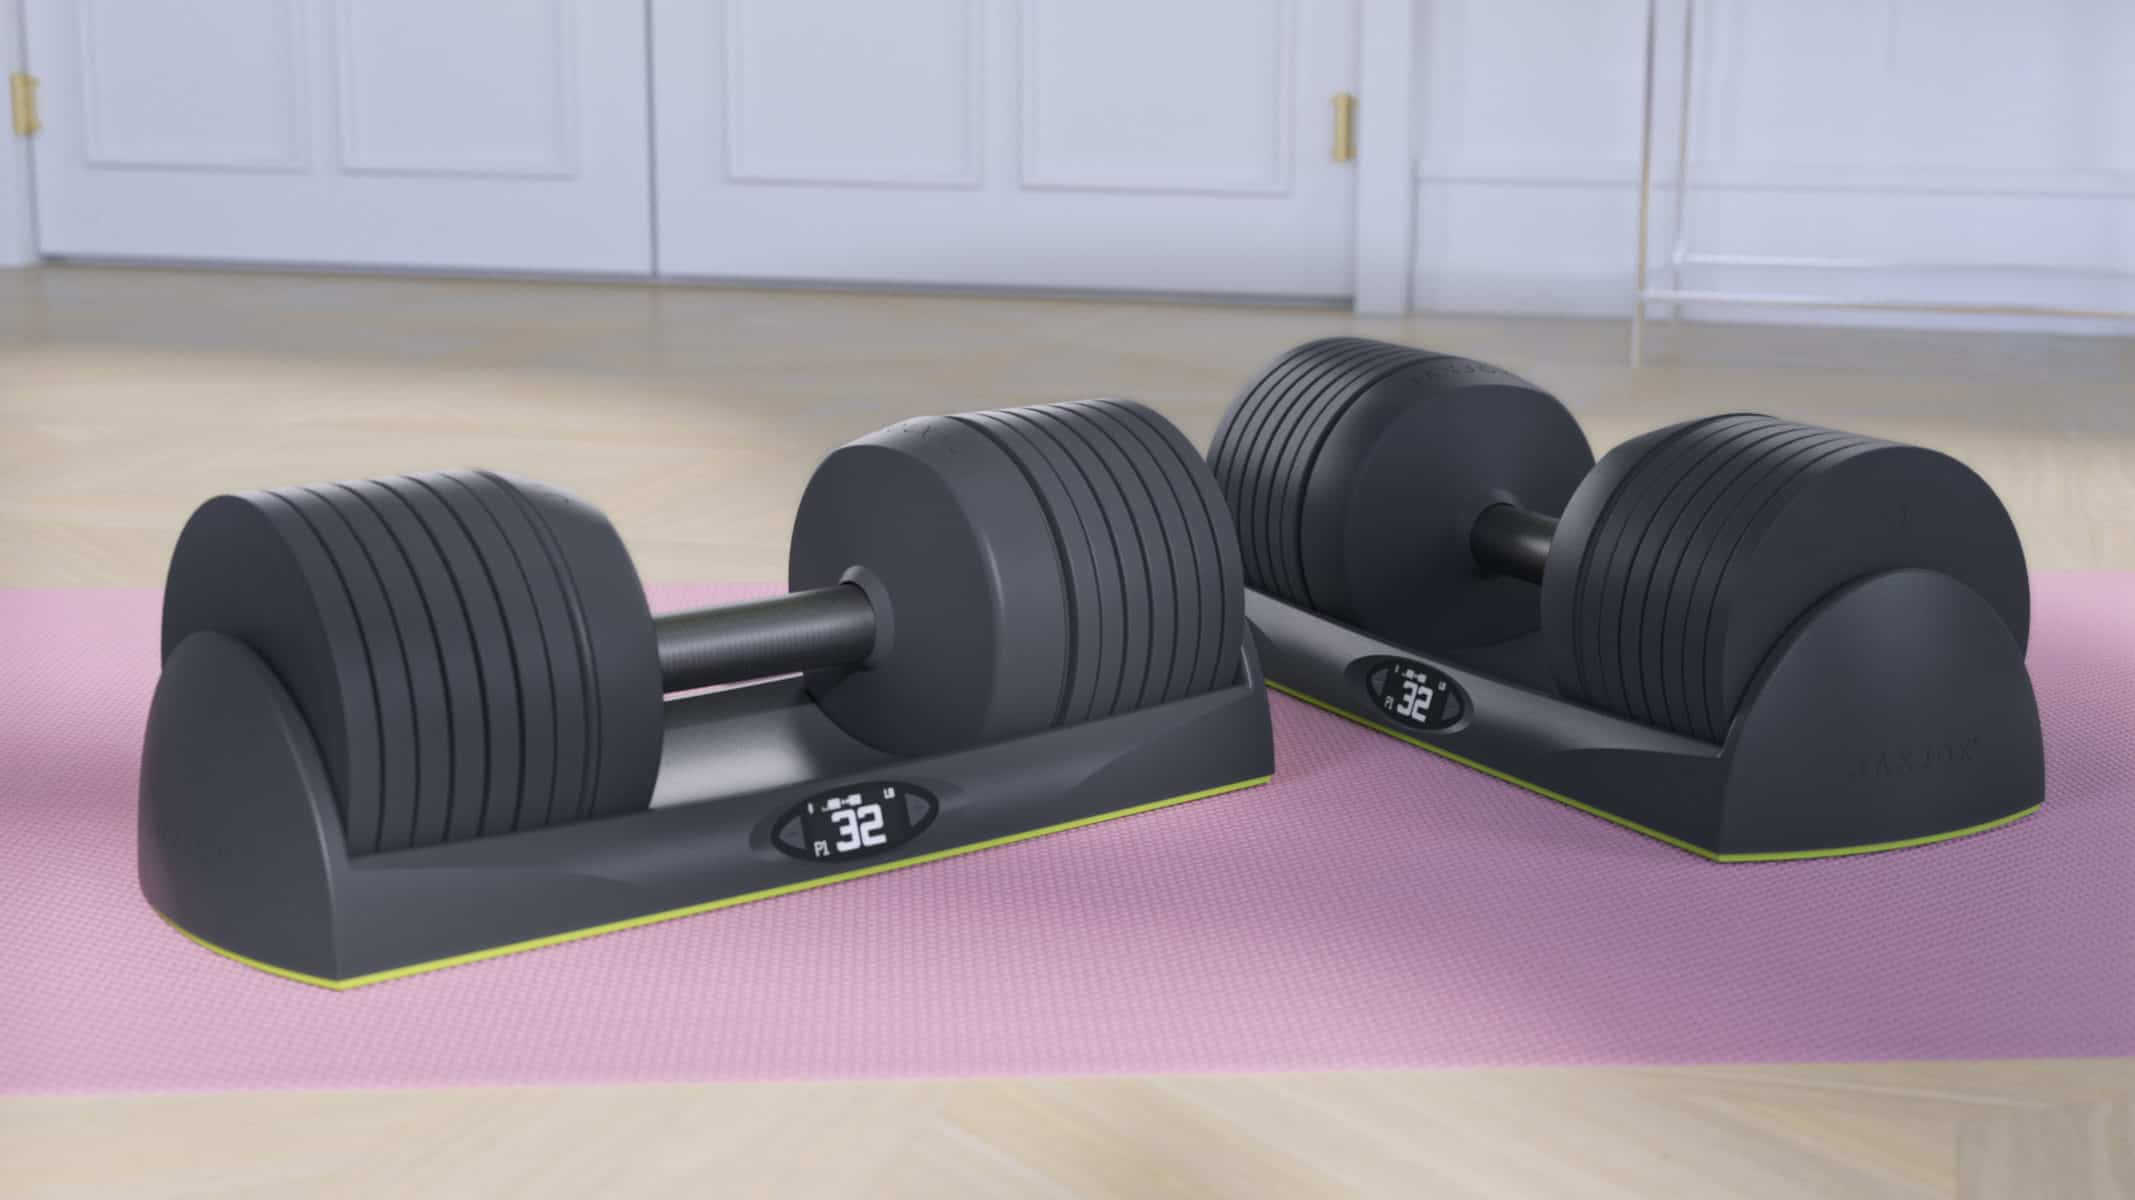 Are Adjustable Dumbbells Good